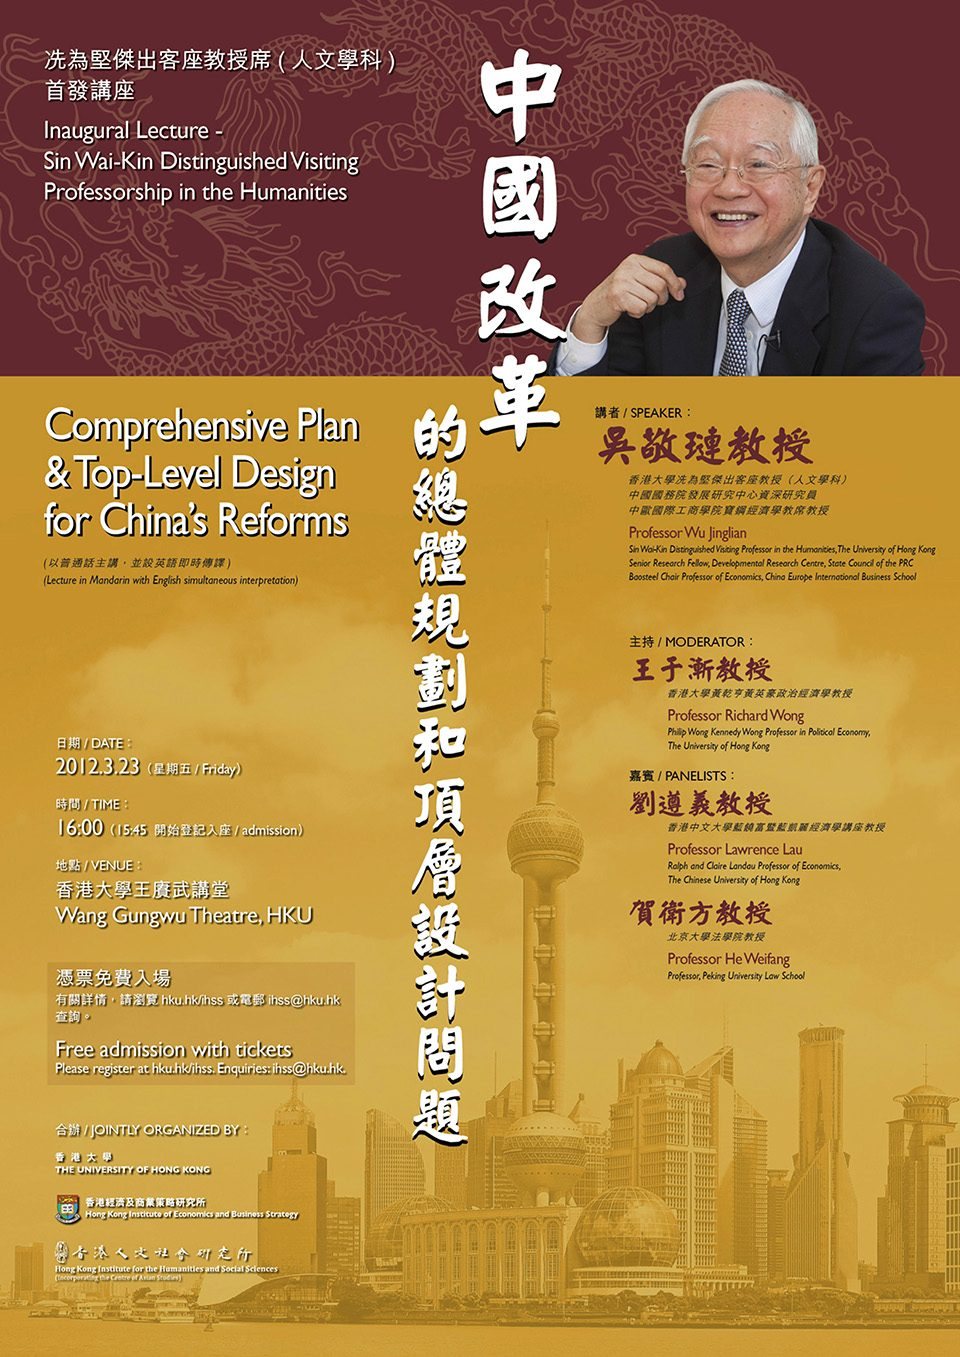 "Inaugural Lecture on ""Comprehensive Plan and Top-Level, Design for China's Reforms"" (中國改革的總體規劃和頂層設計問題) by Professor Jinglian Wu (March 23, 2012)"